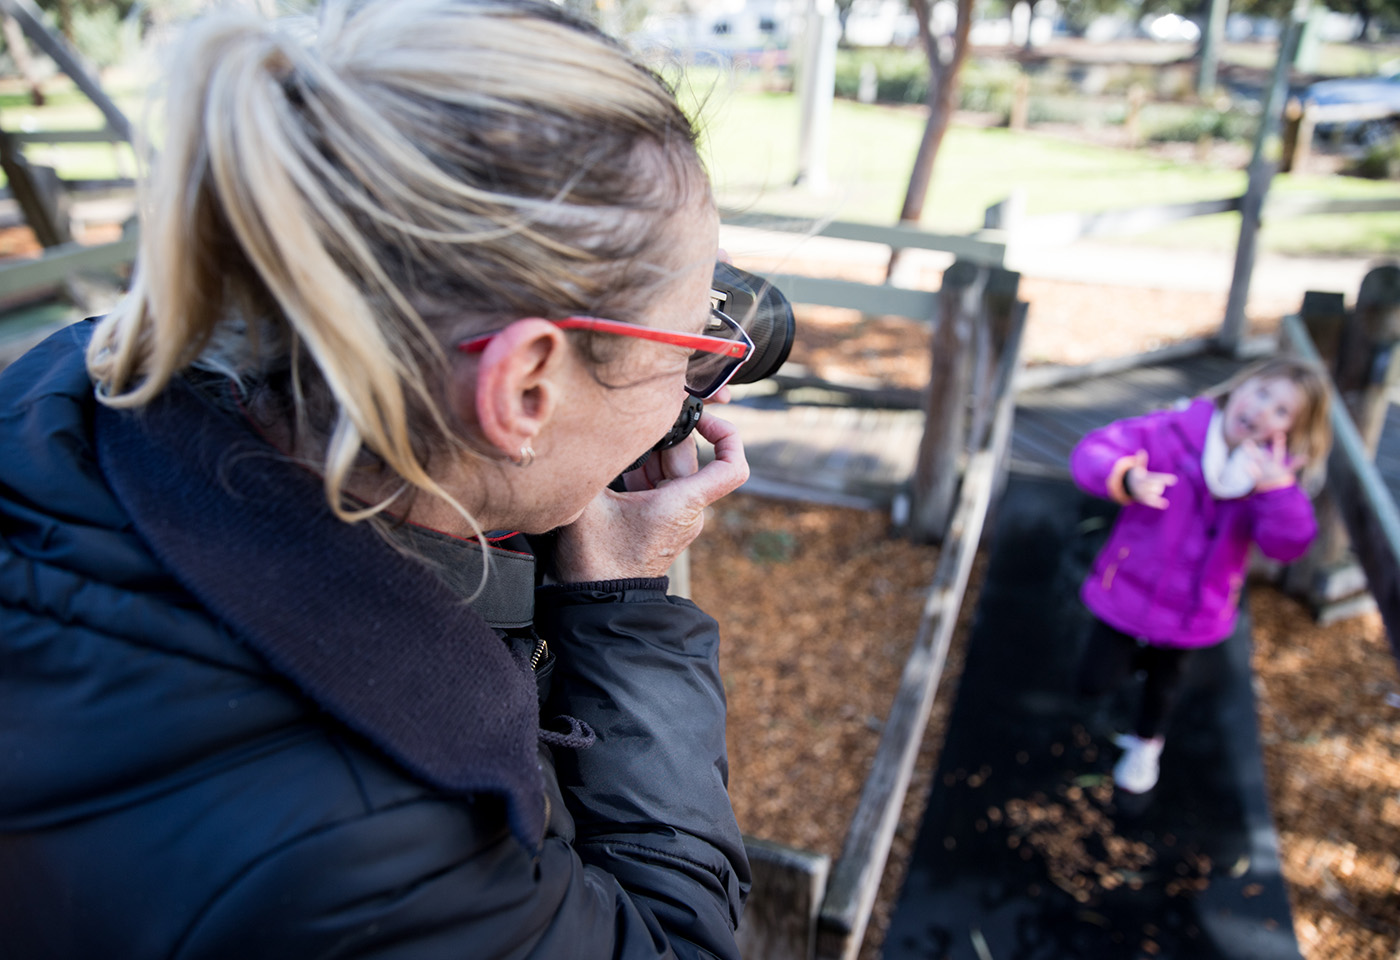 Image of mum taking photo of daughter by Neal Walters